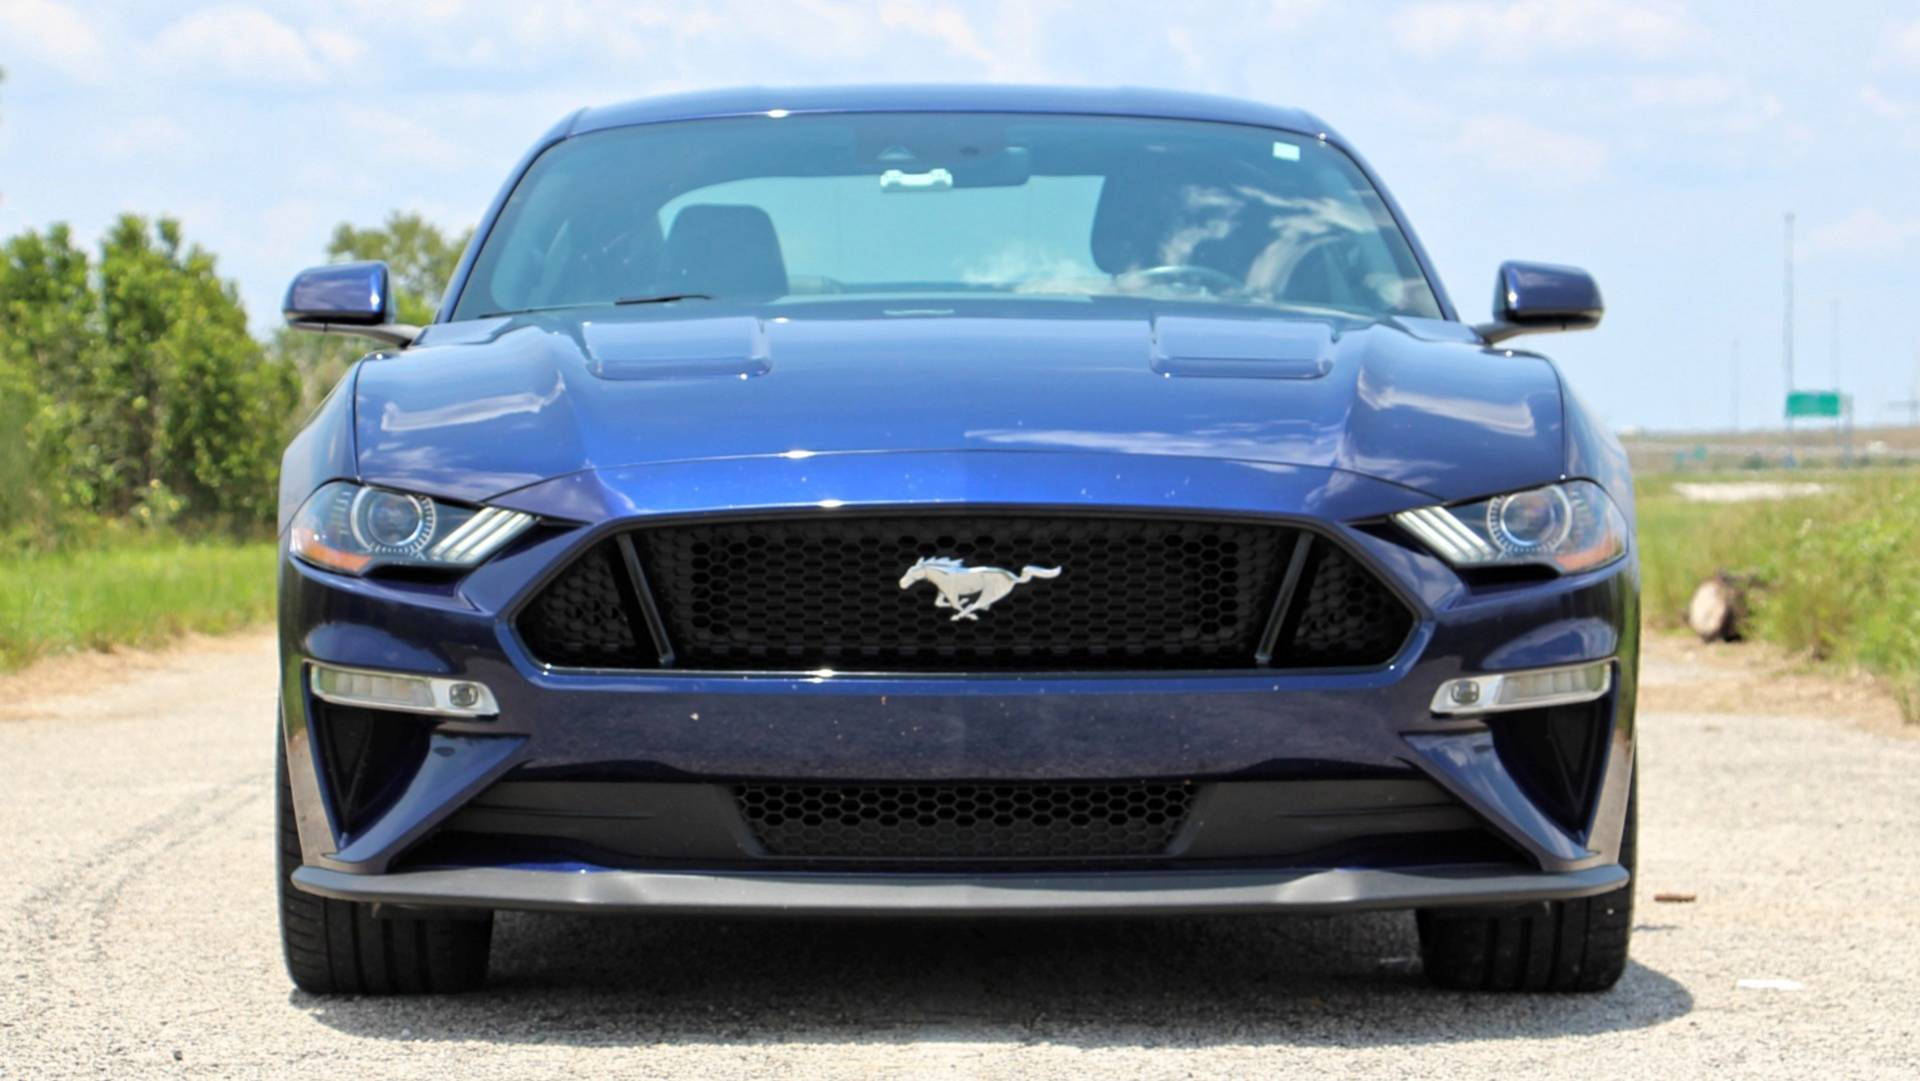 2018 ford mustang gt review still fun but losing its charm